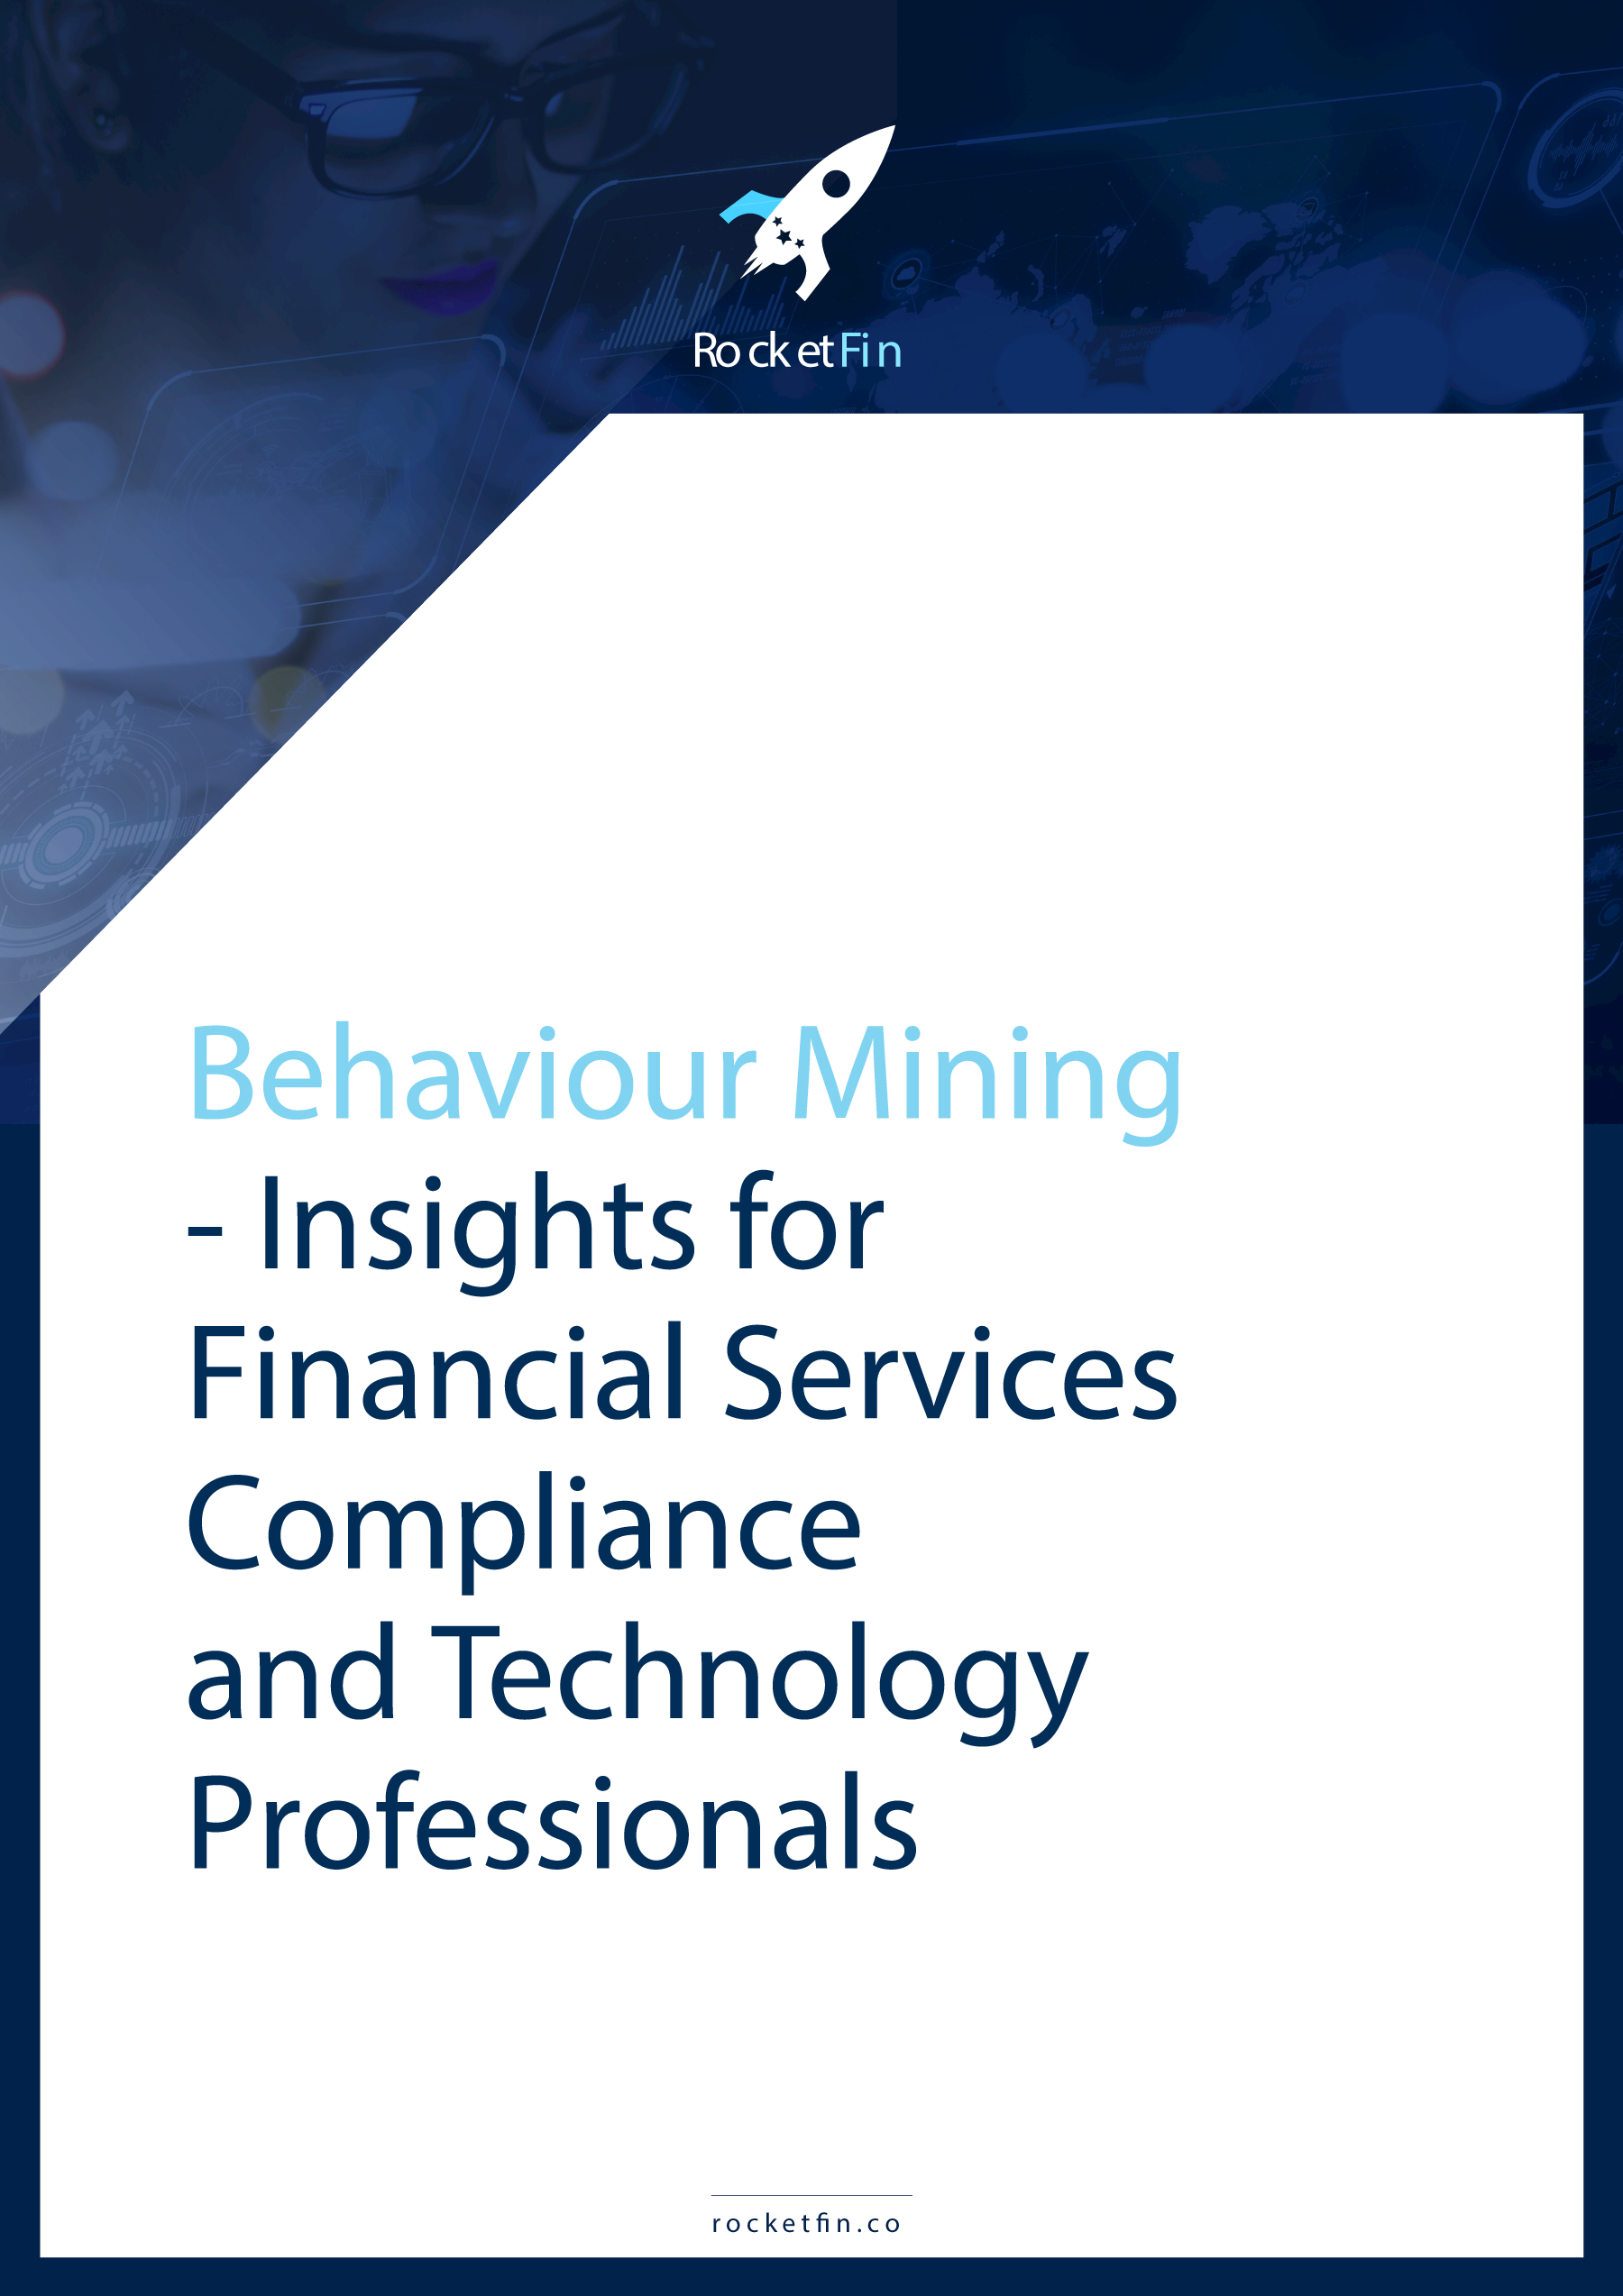 Behaviour Mining - Insights for Financial Services Compliance and Technology Professionals